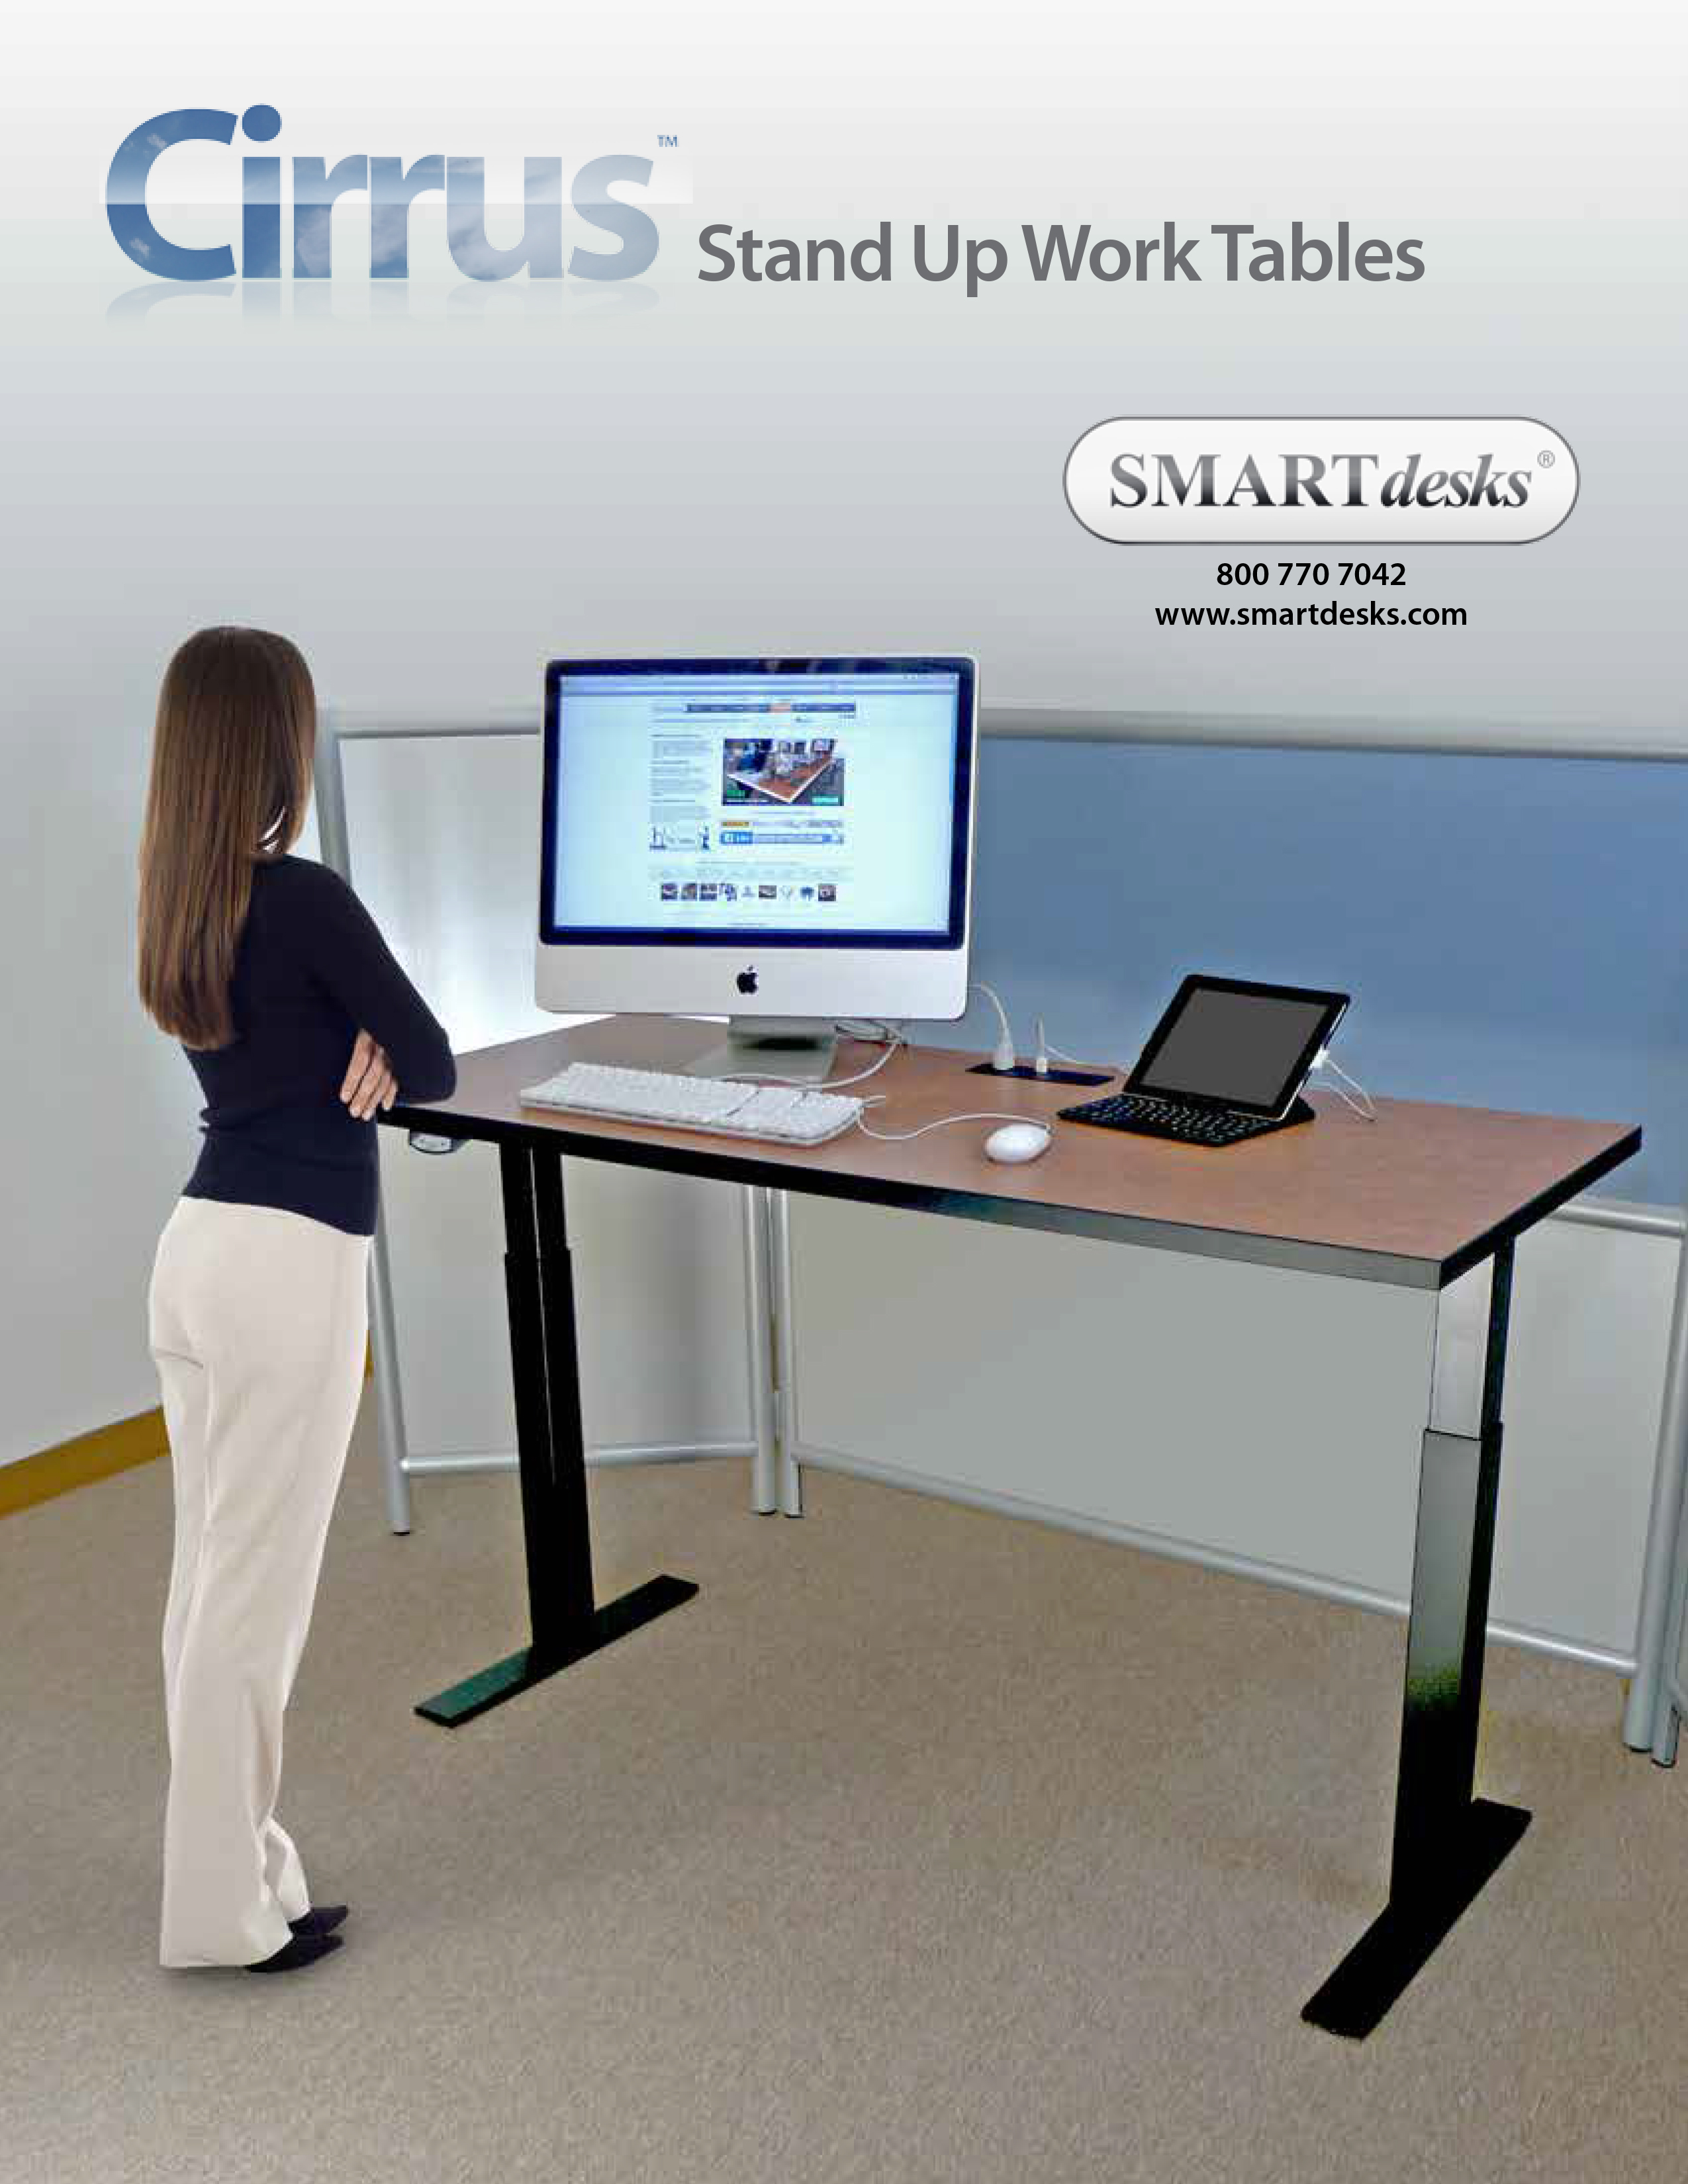 cirrus smart their htm desk up makes think new on for people easier line desks releases and to it feet stand